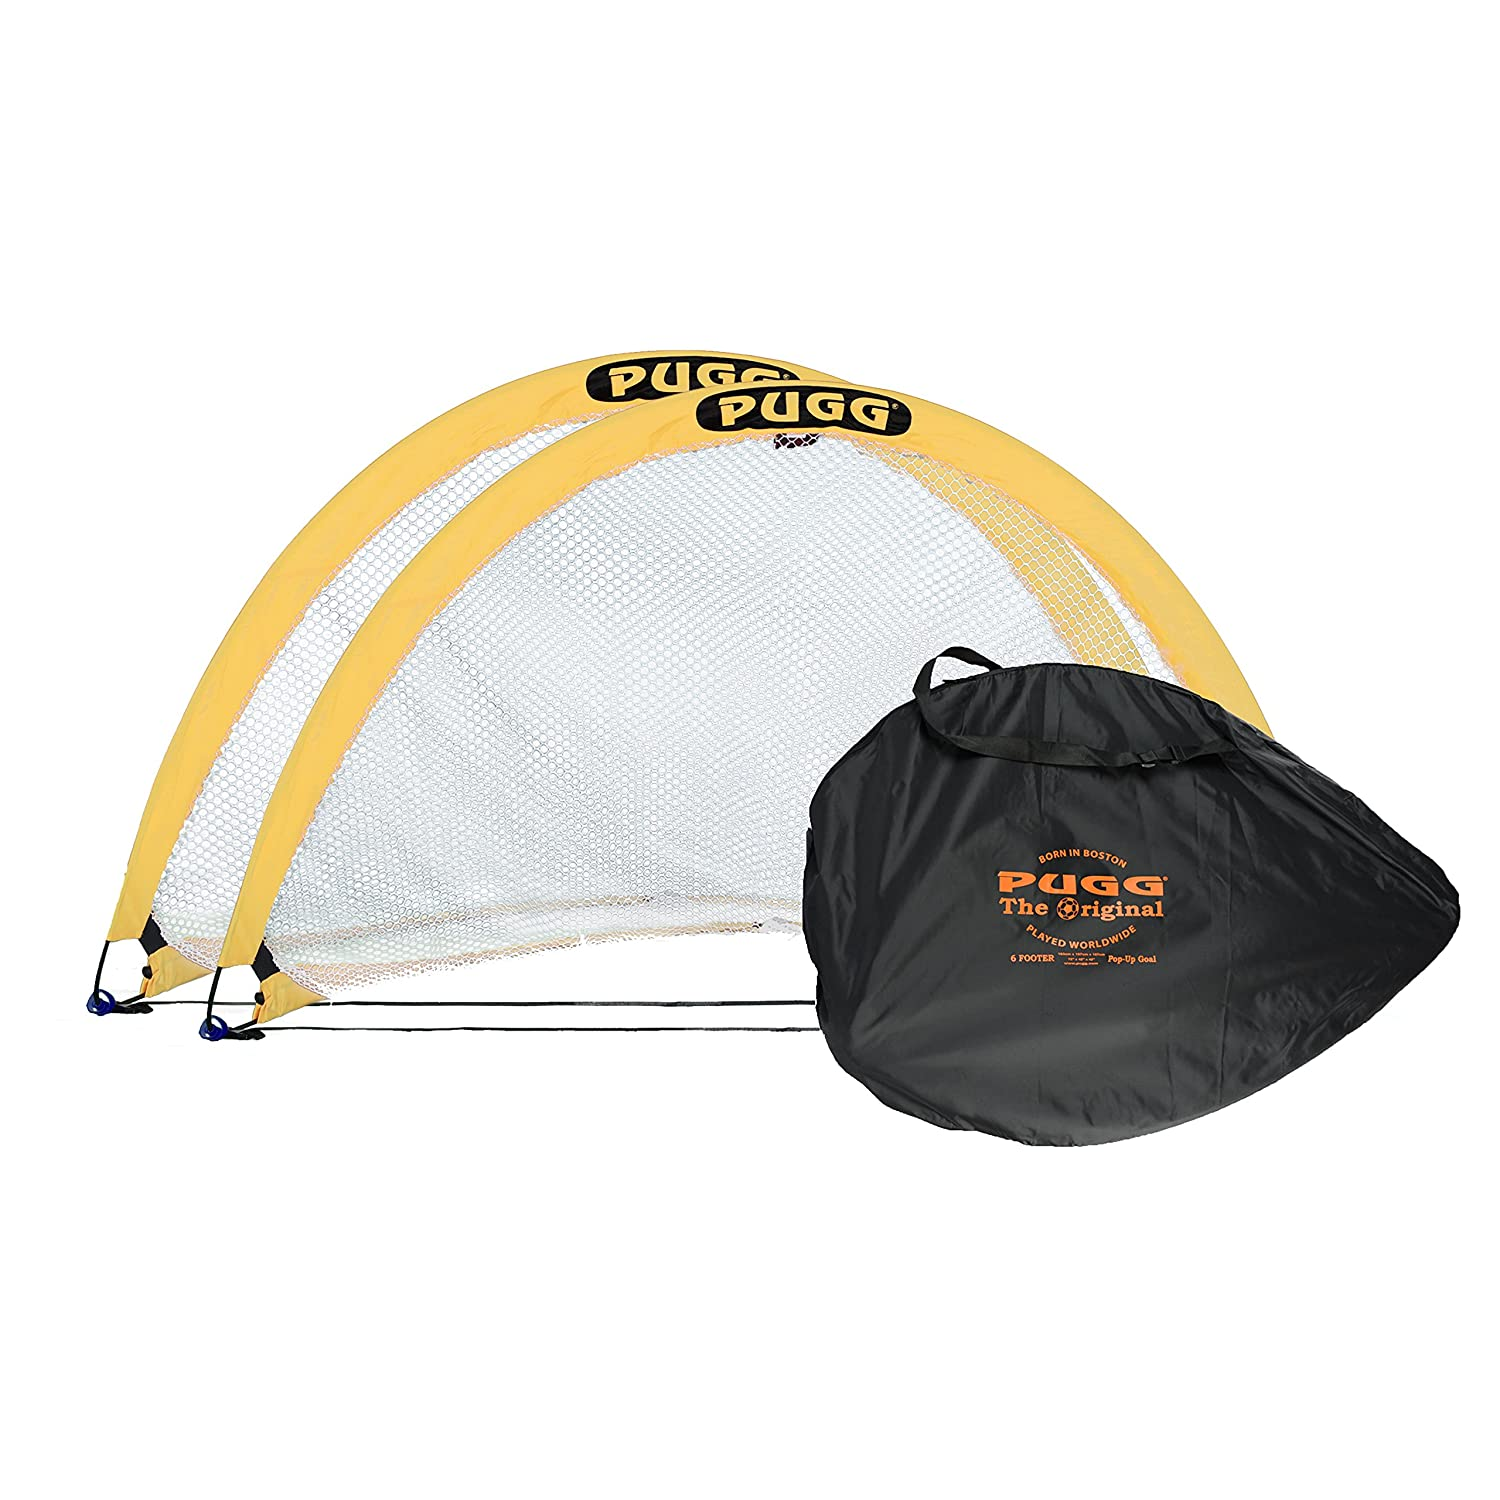 PUGG Pop Up PORTABLE TRAINING GOAL